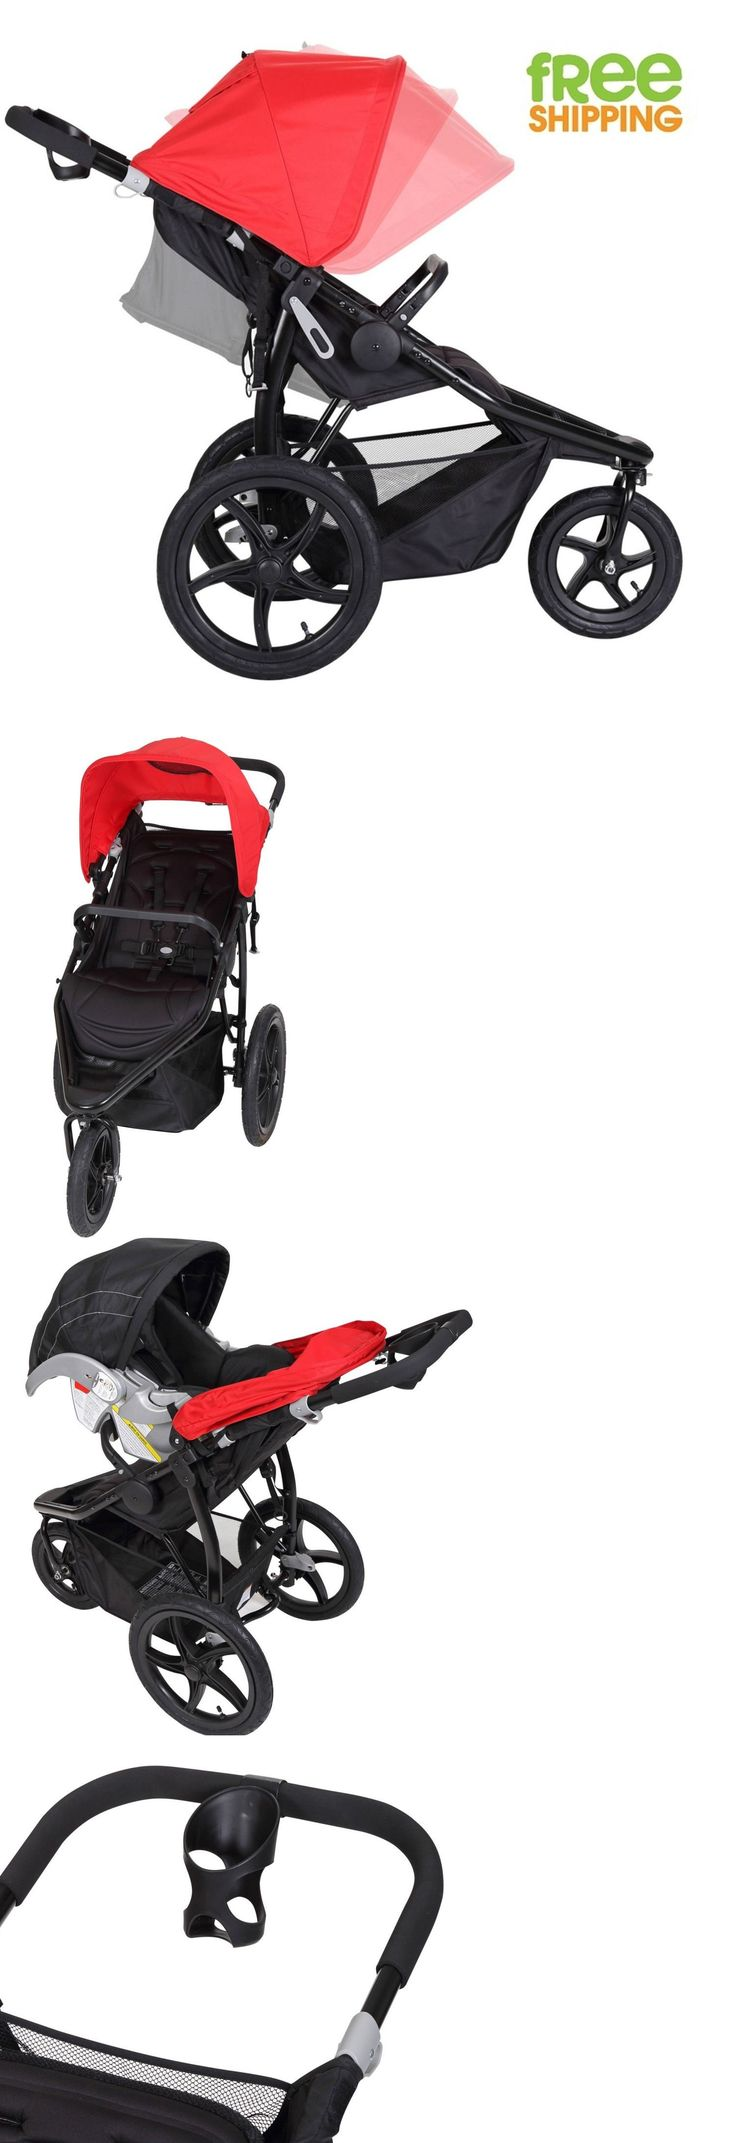 baby and kid stuff: 3 Wheel Jogging Stroller Black Red Baby Carriage Sport Pram Lightweight New! BUY IT NOW ONLY: $116.84